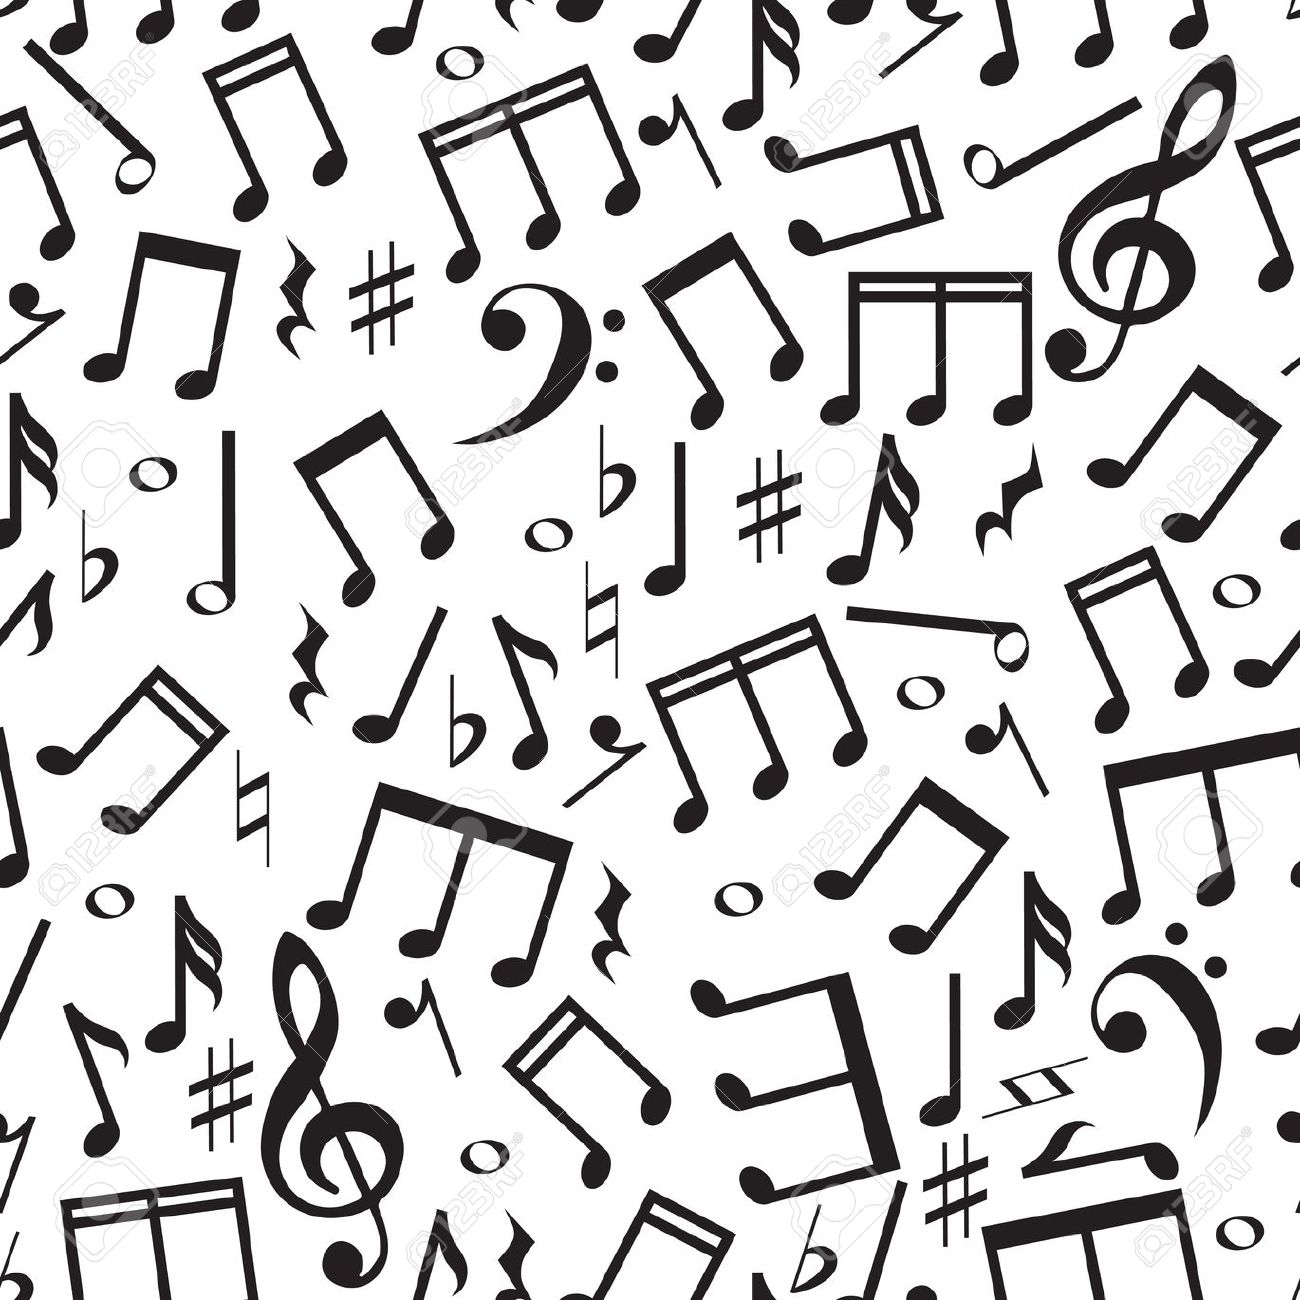 Free clipart background patterns music notes banner free stock Free clipart background patterns music notes - ClipartFest banner free stock